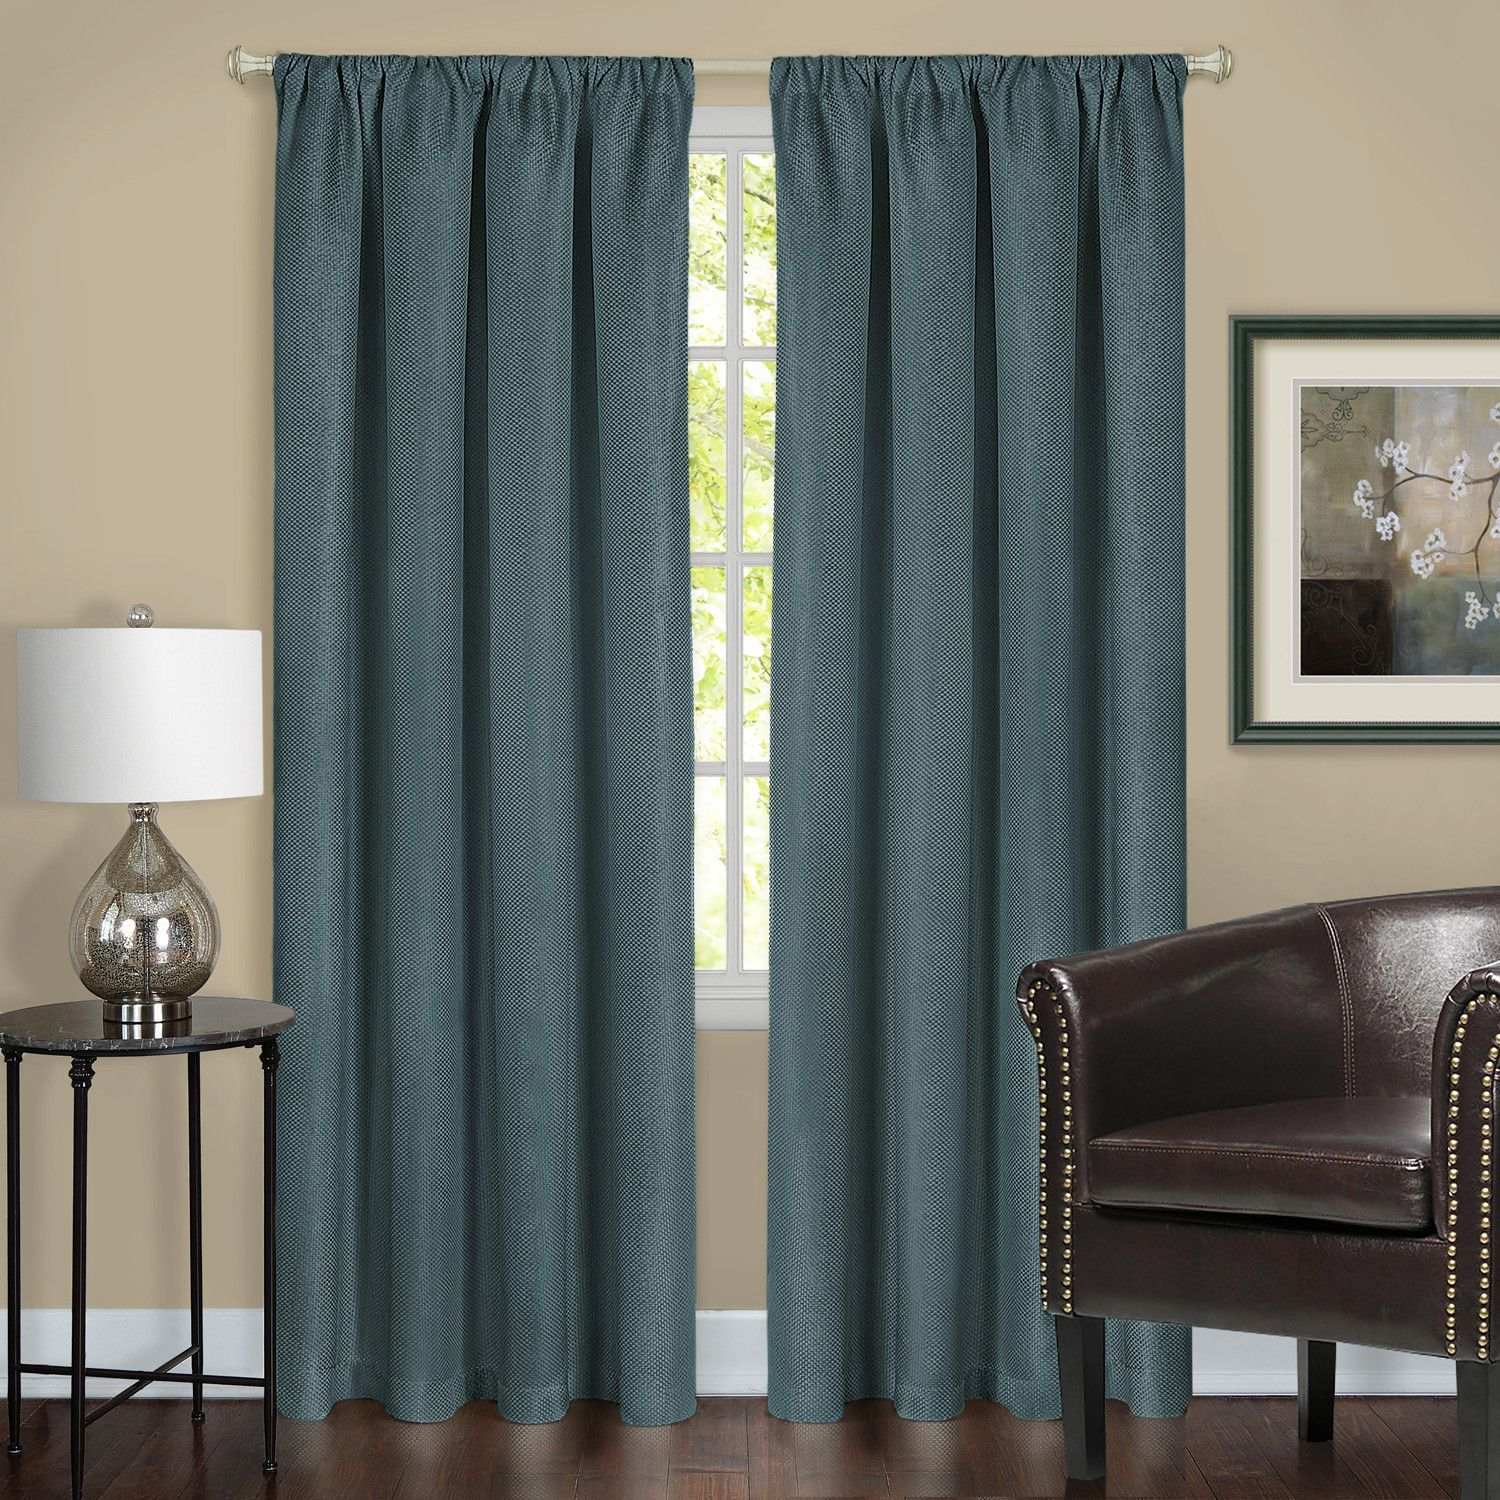 Harmony blackout single curtain panel products pinterest products